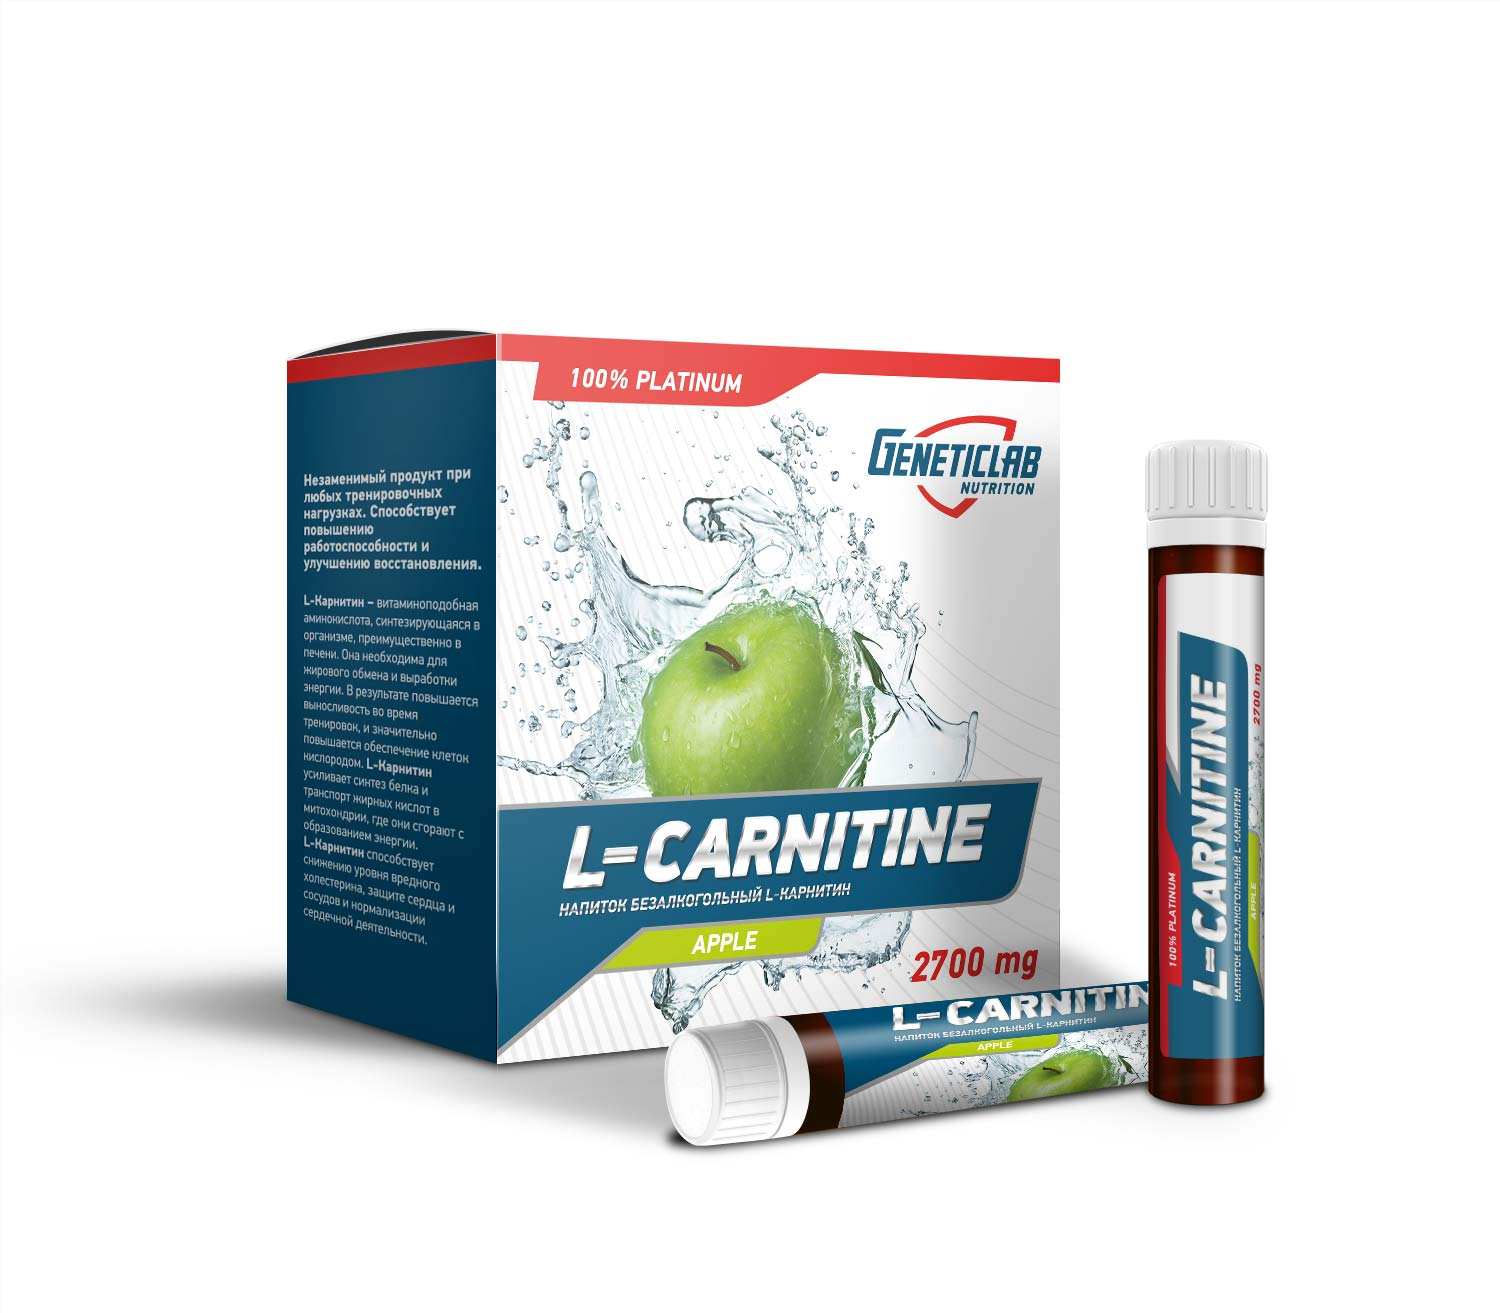 Genetic Lab L-Carnitine 2700